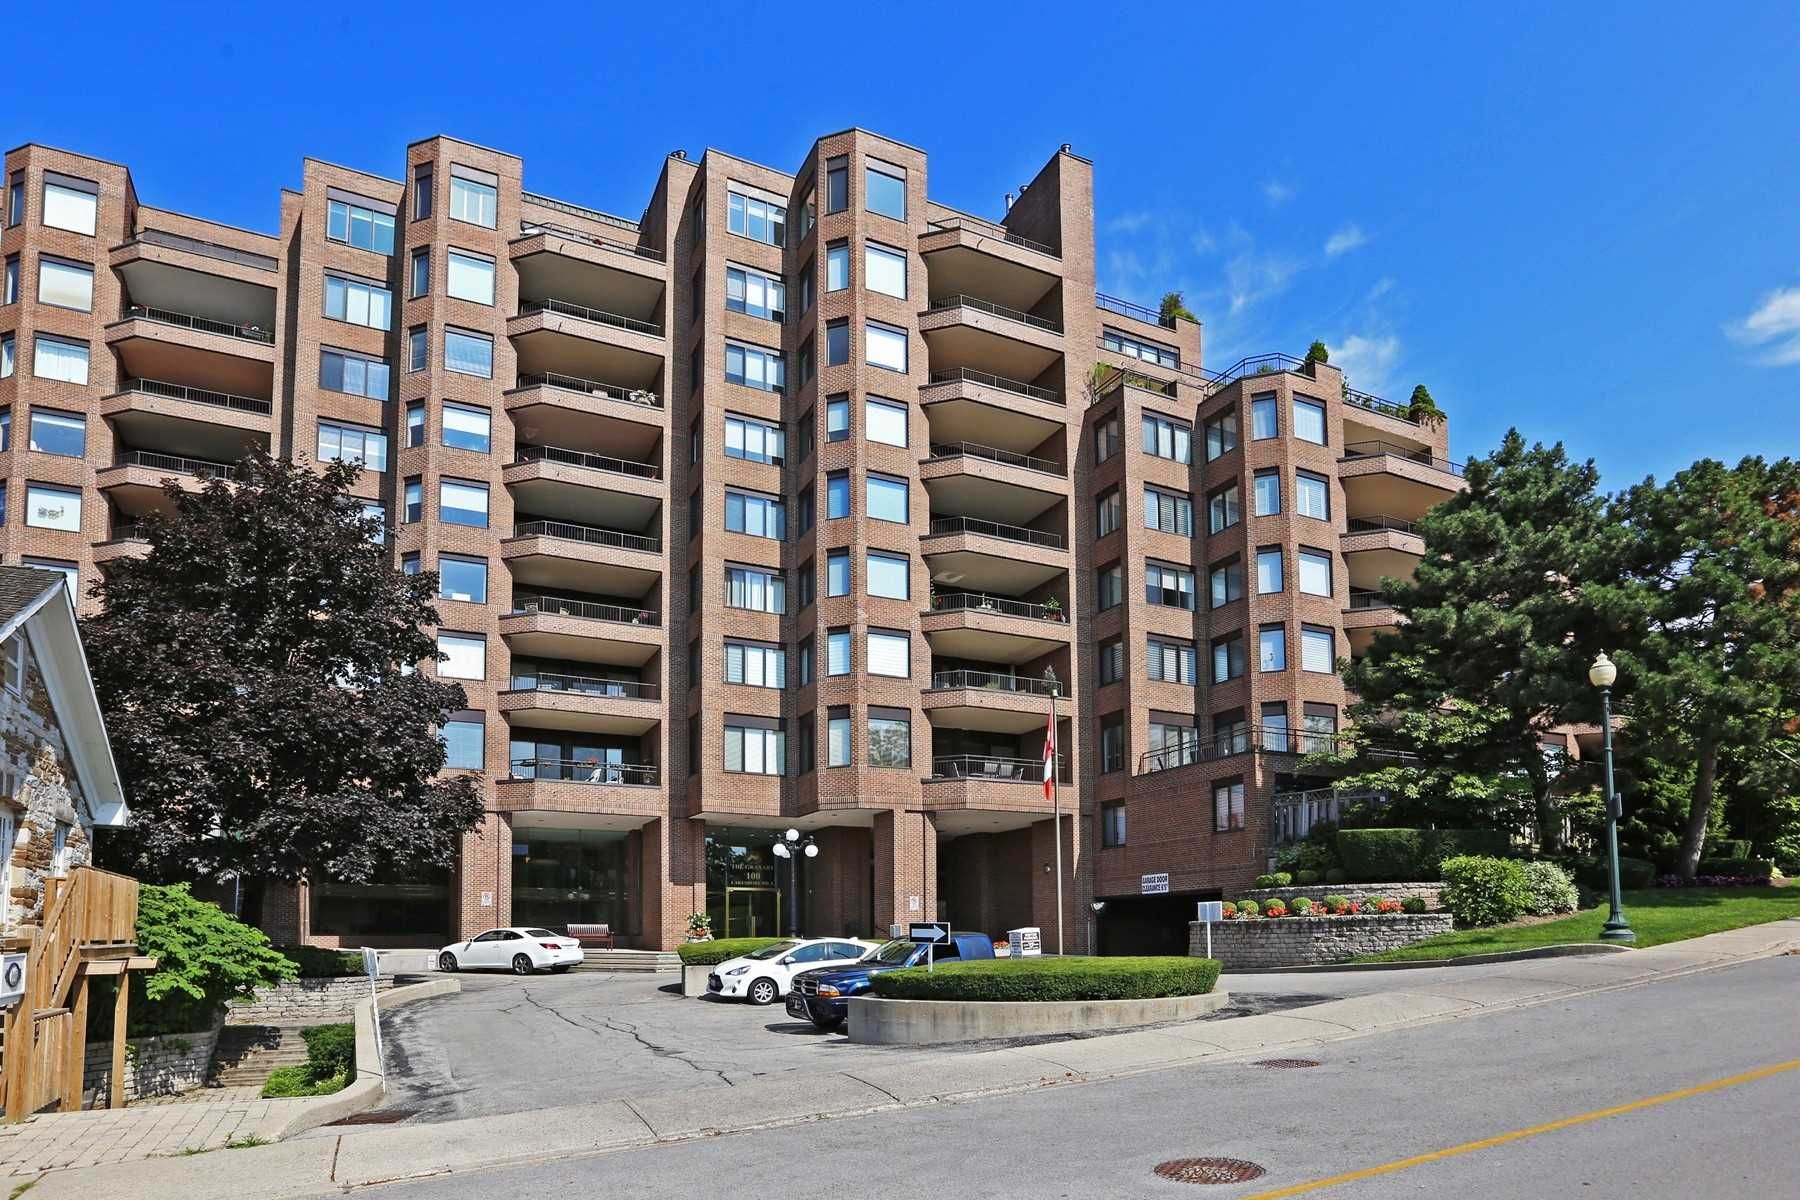 The Granary Condos at 100 Lakeshore Rd E. This condo is located in Eastlake, Oakville